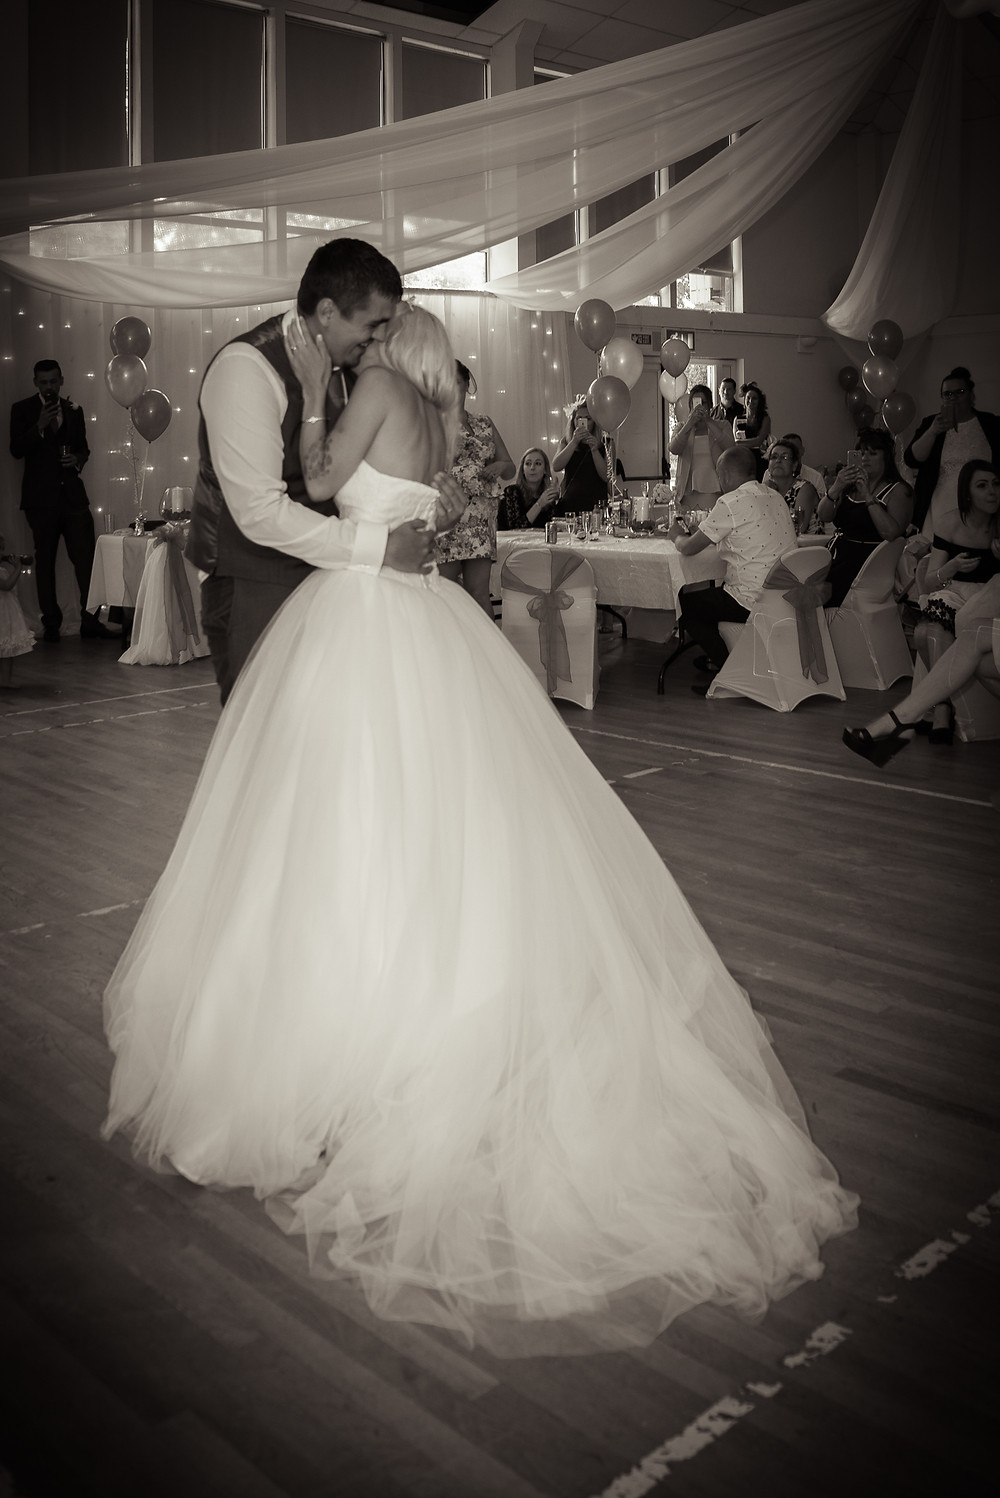 WEDDING PHOTOGRAPHY SOUTH WALES - FIRST DANCE